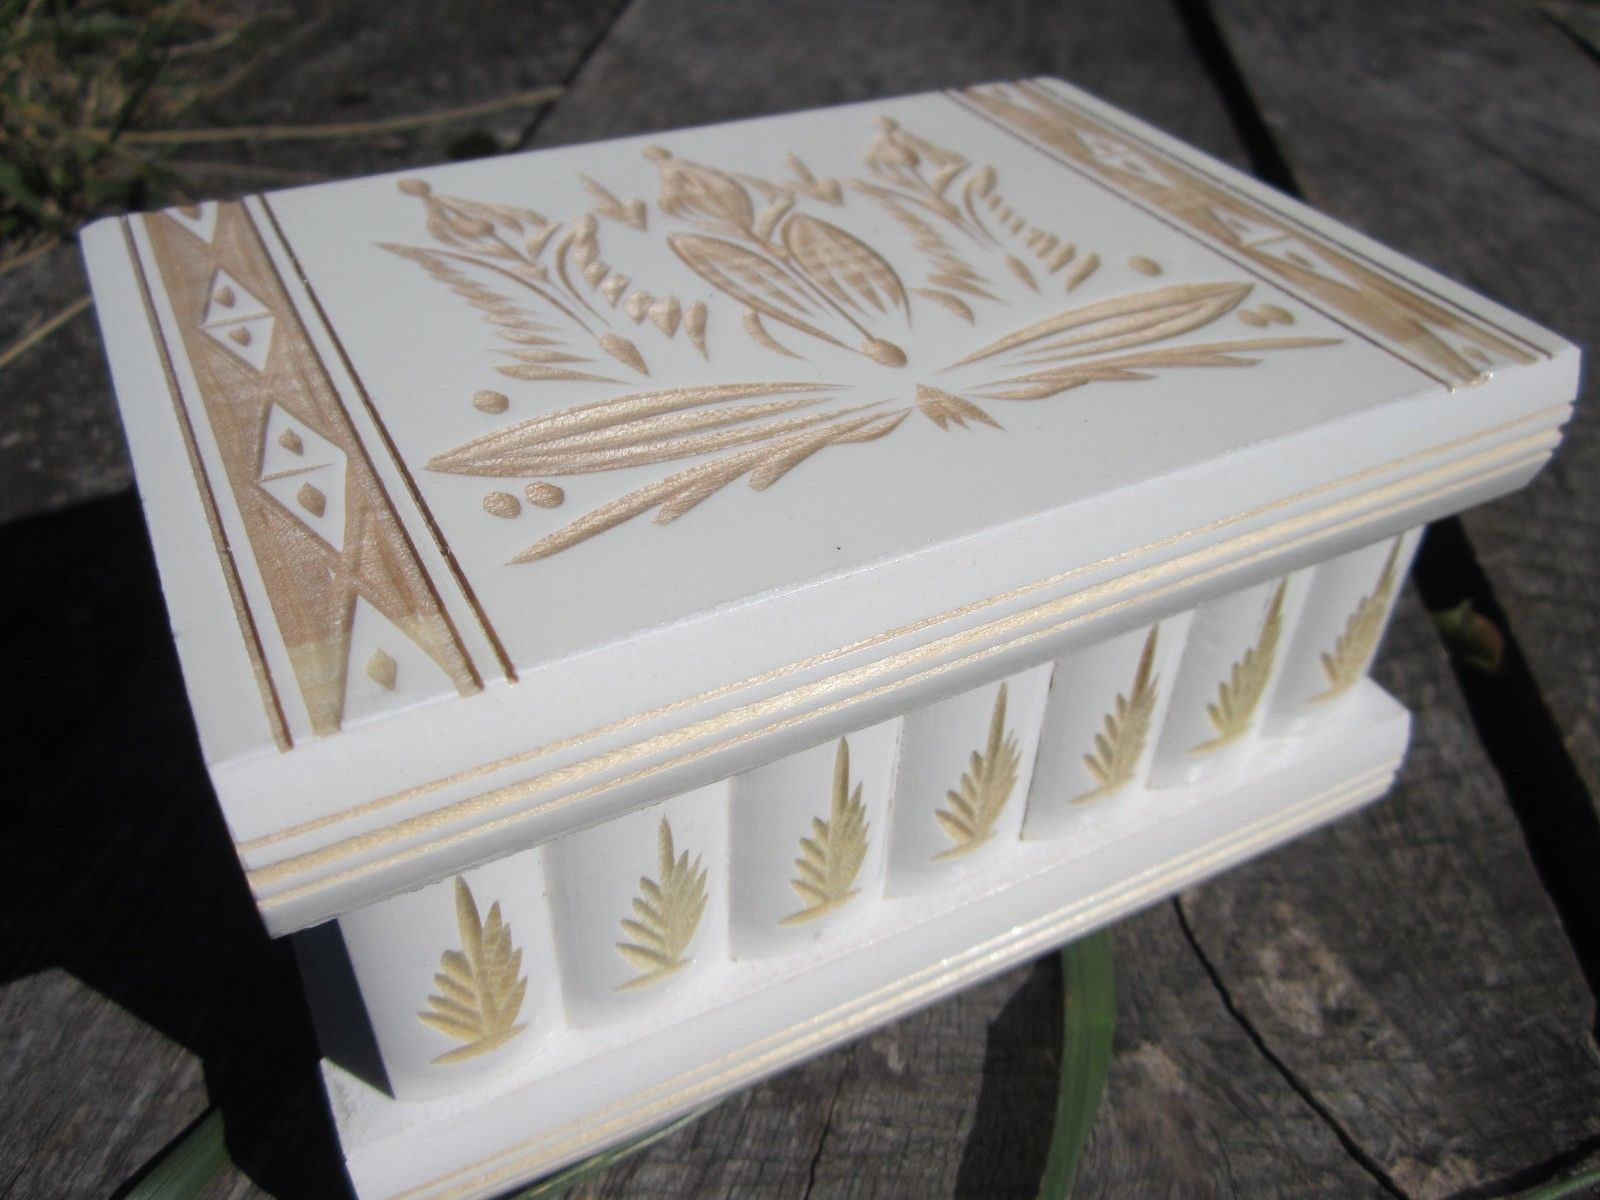 Puzzle Jewelry Box with Secret Compartment and 50 similar items